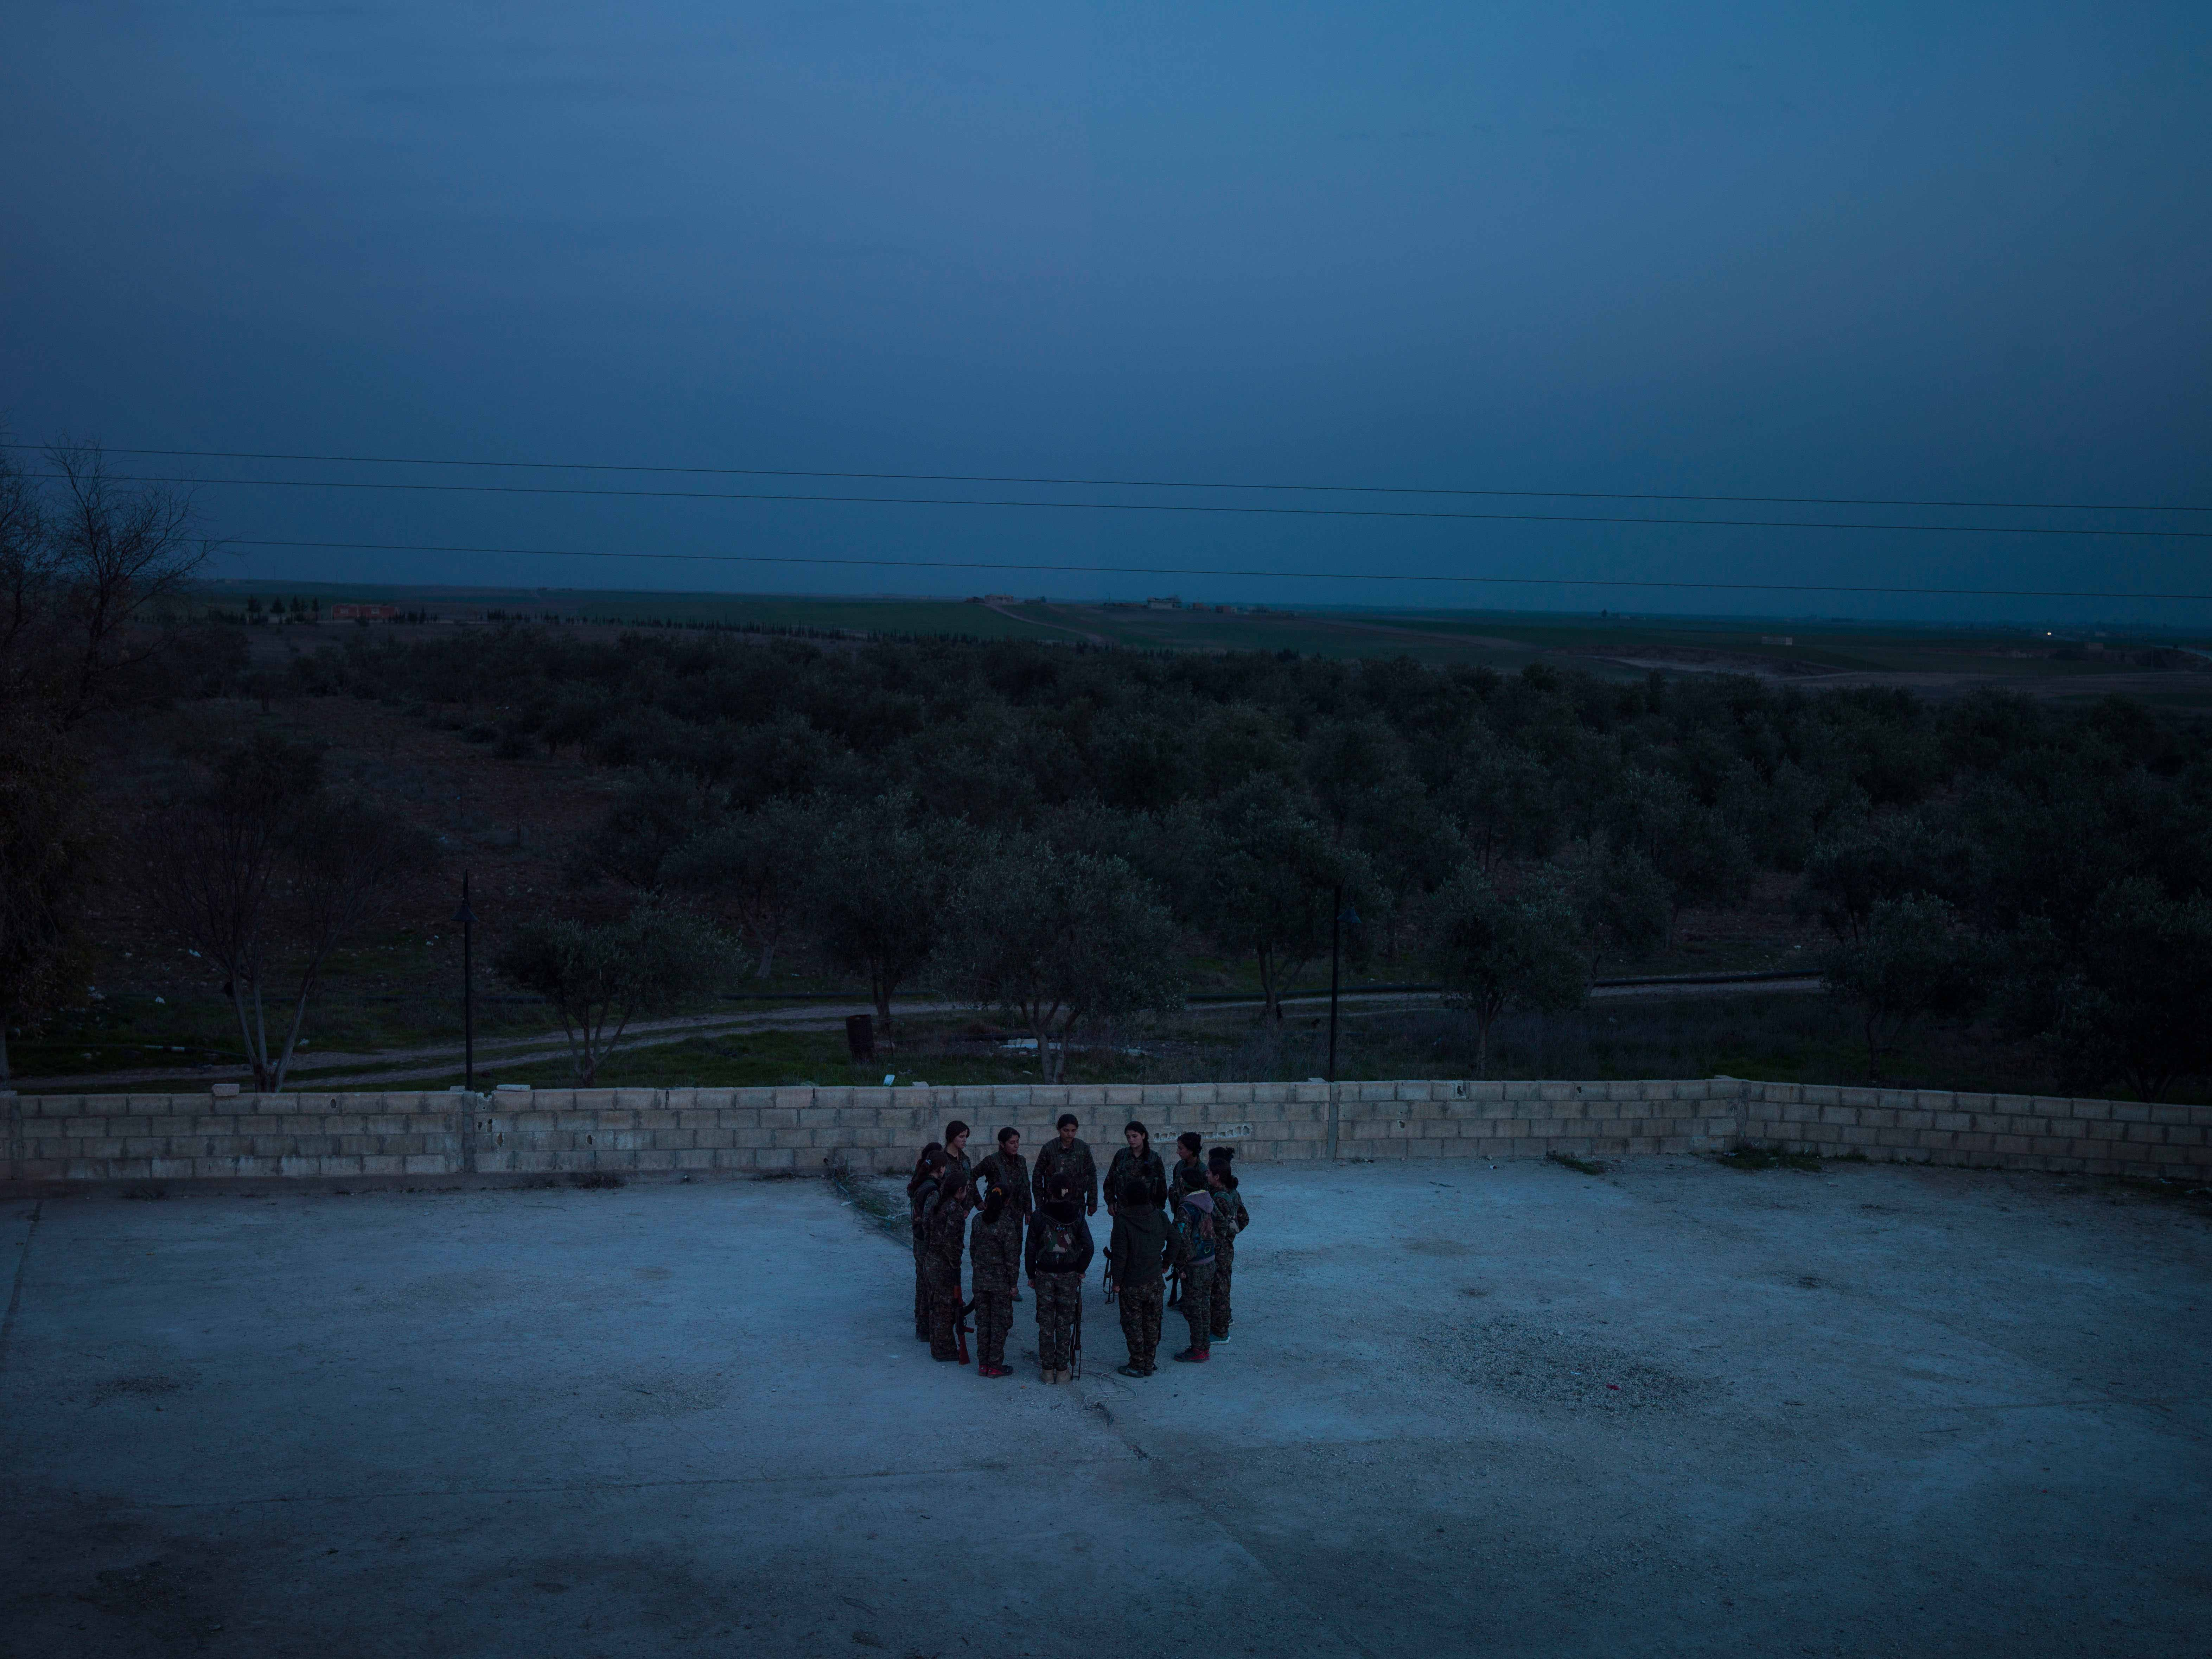 YPJ members during daily training at their base in Serikani. © Newsha Tavakolian / Magnum Photos